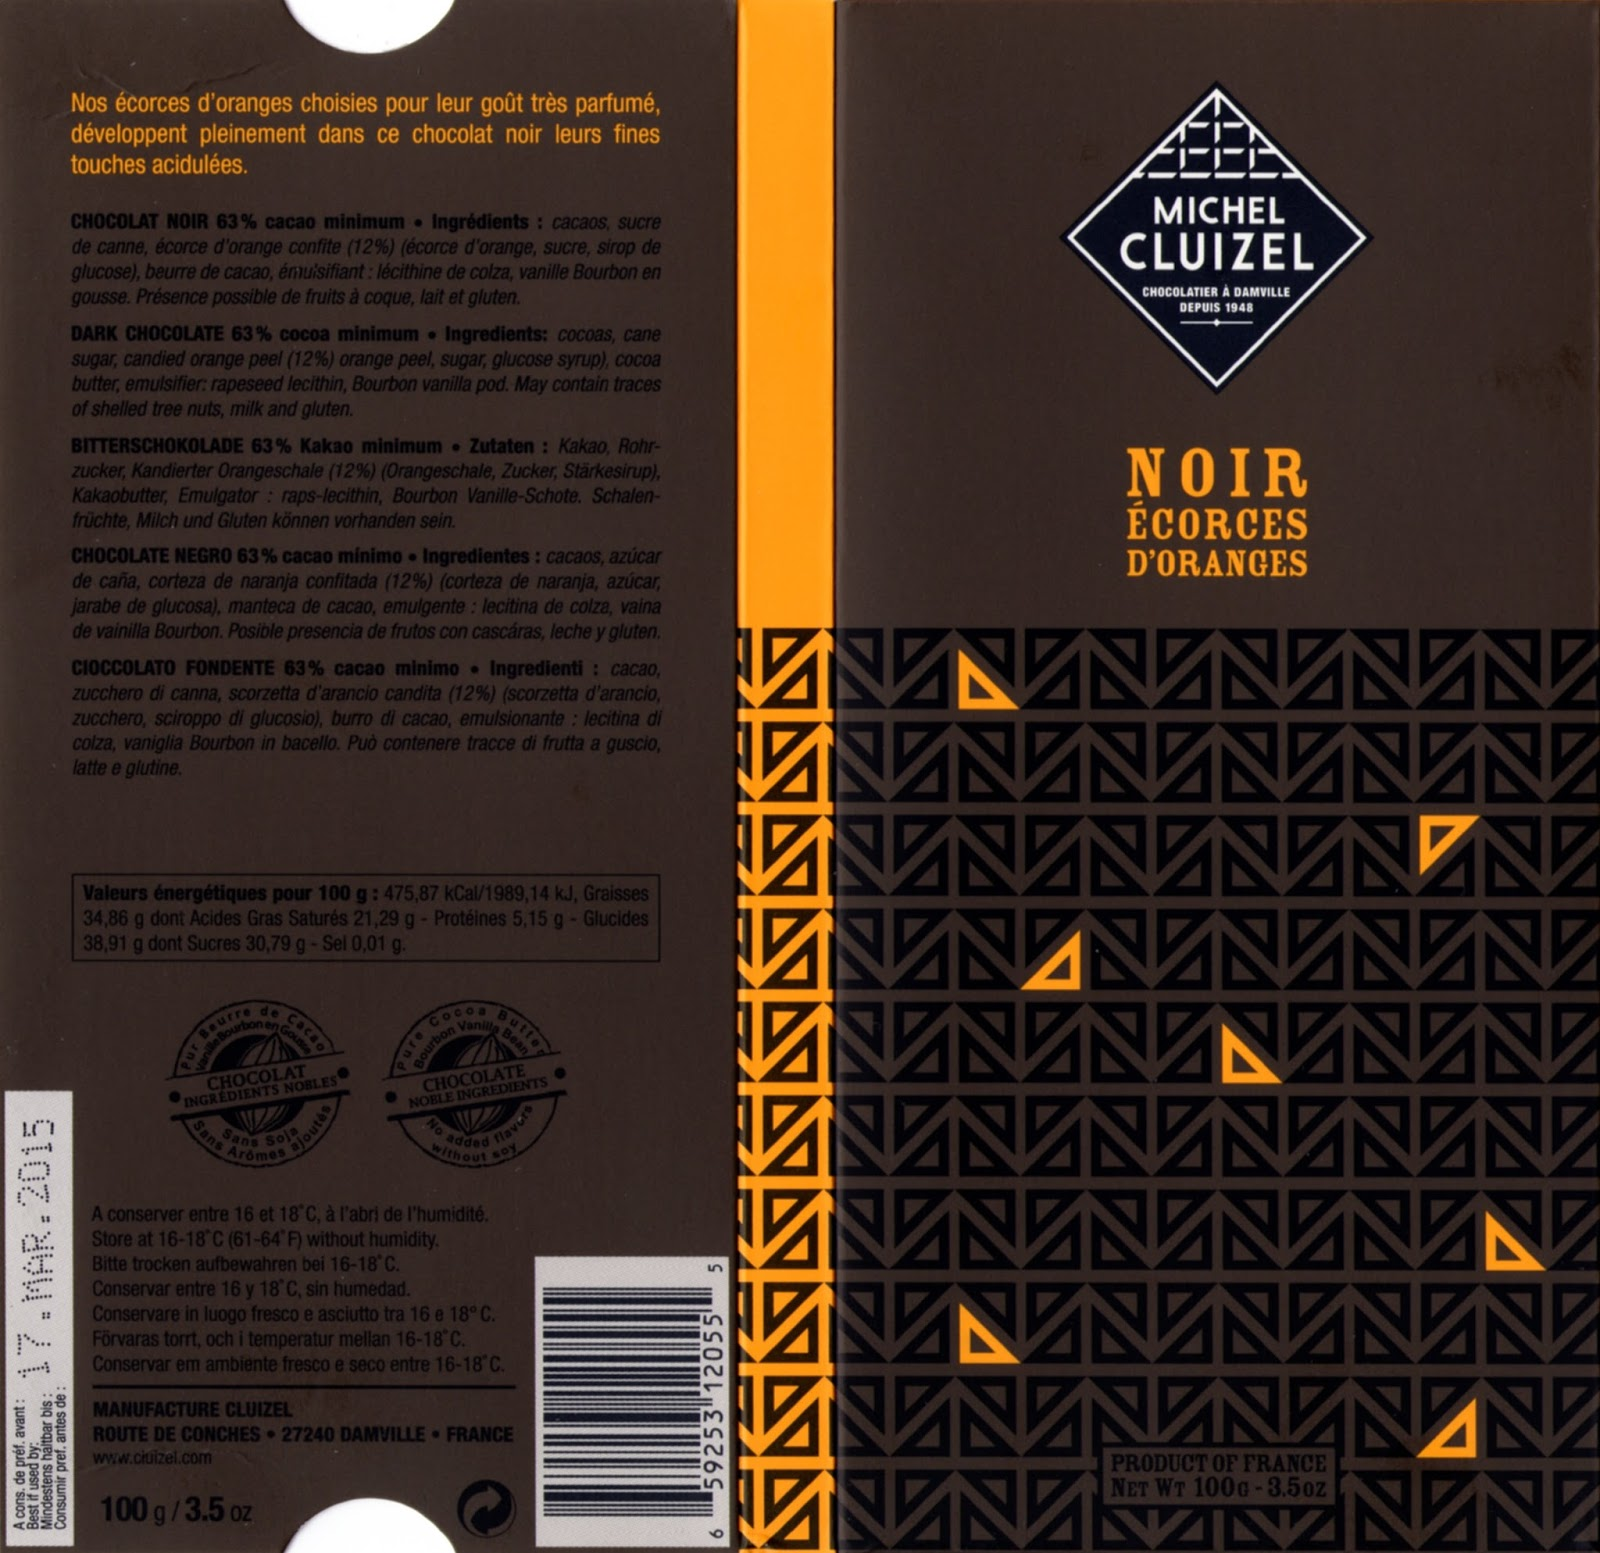 tablette de chocolat noir gourmand michel cluizel noir ecorces d'oranges